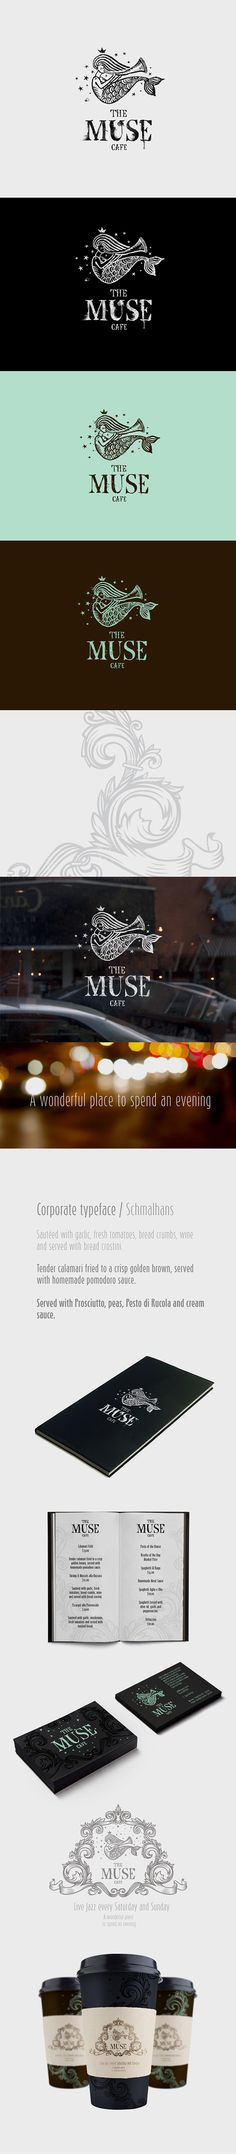 ru_identity: The Muse cafe / Фирменный стиль, логотип. lovely logo #identity #packaging #branding PD